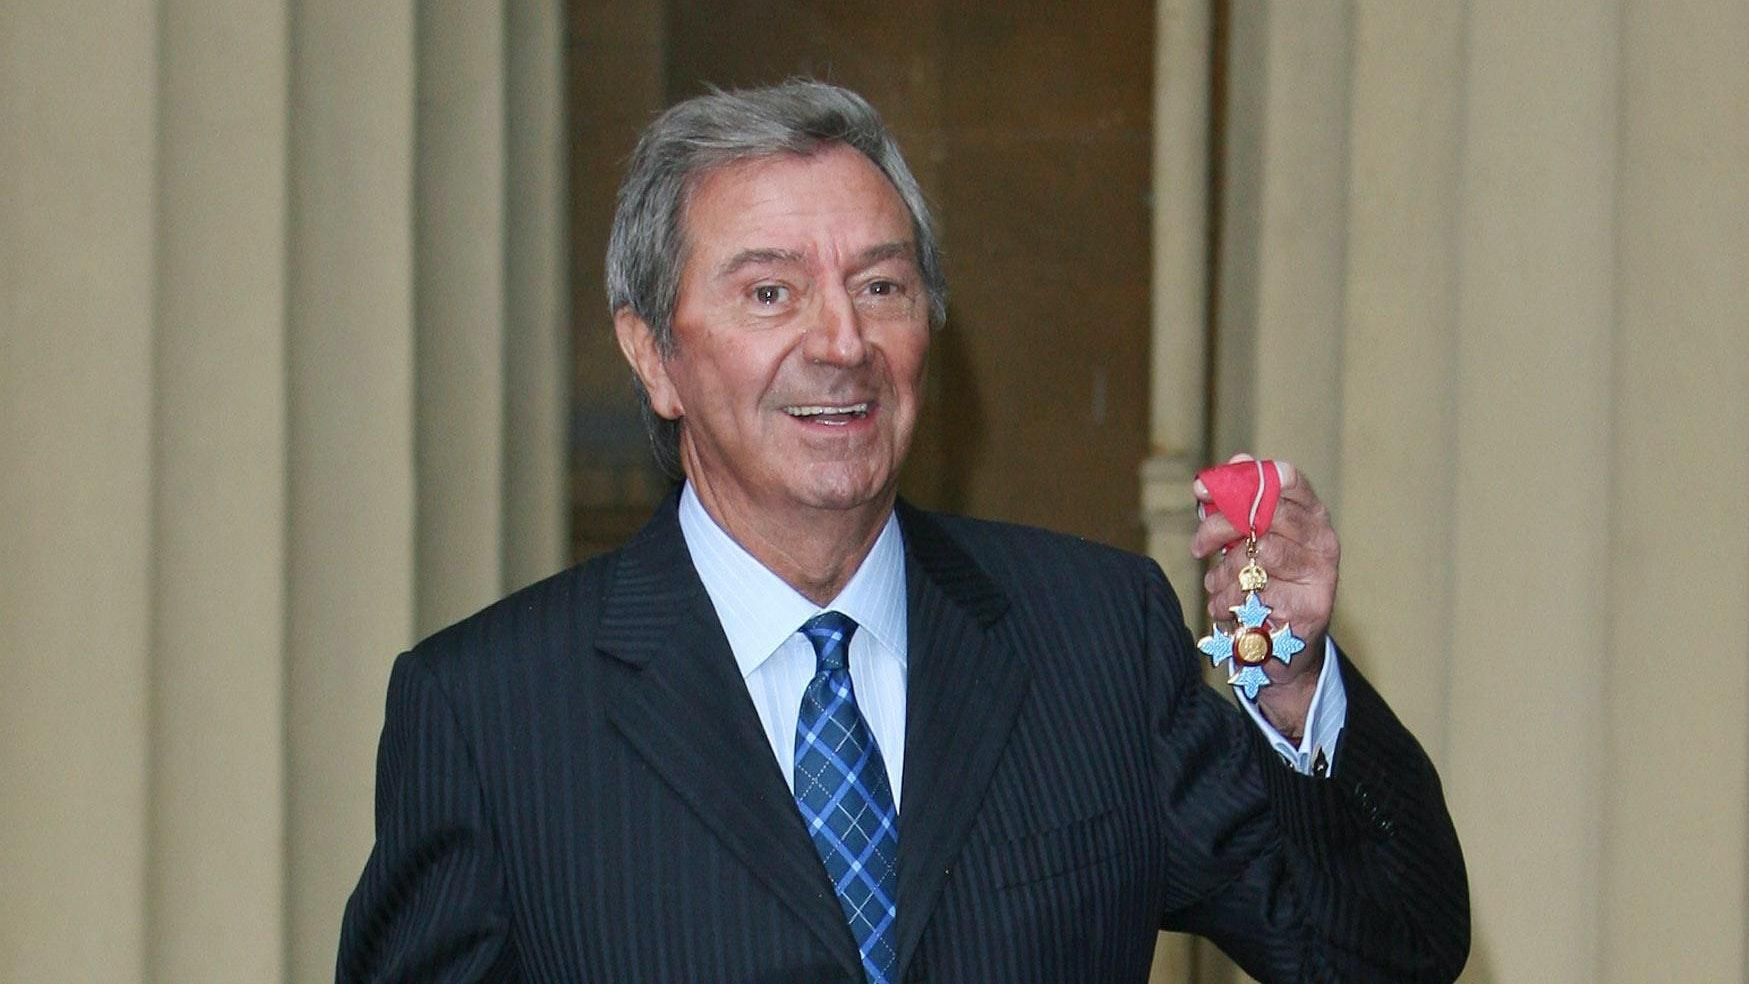 TV star Des O'Connor dies after suffering fall at home